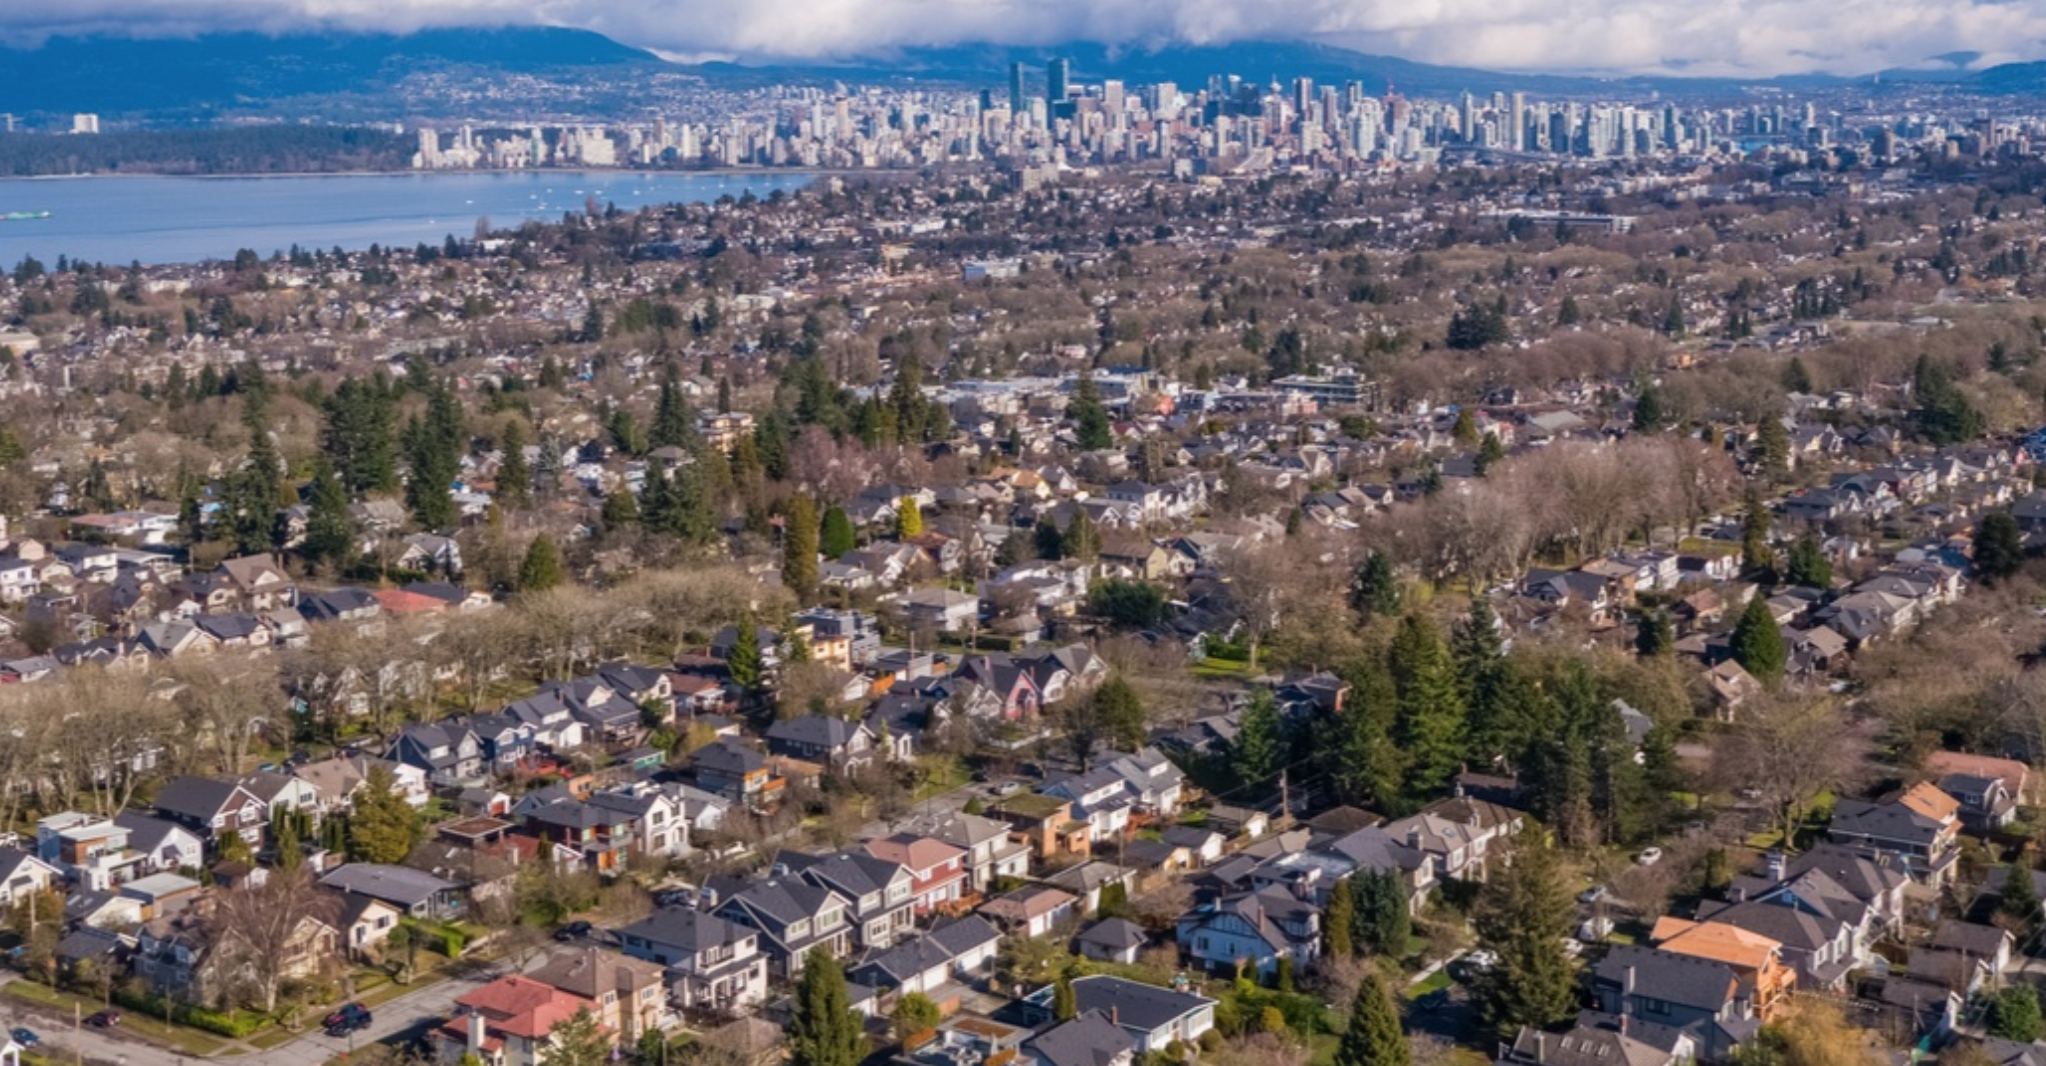 Detached Real Estate Sales In Vancouver Fell Over 34% In October